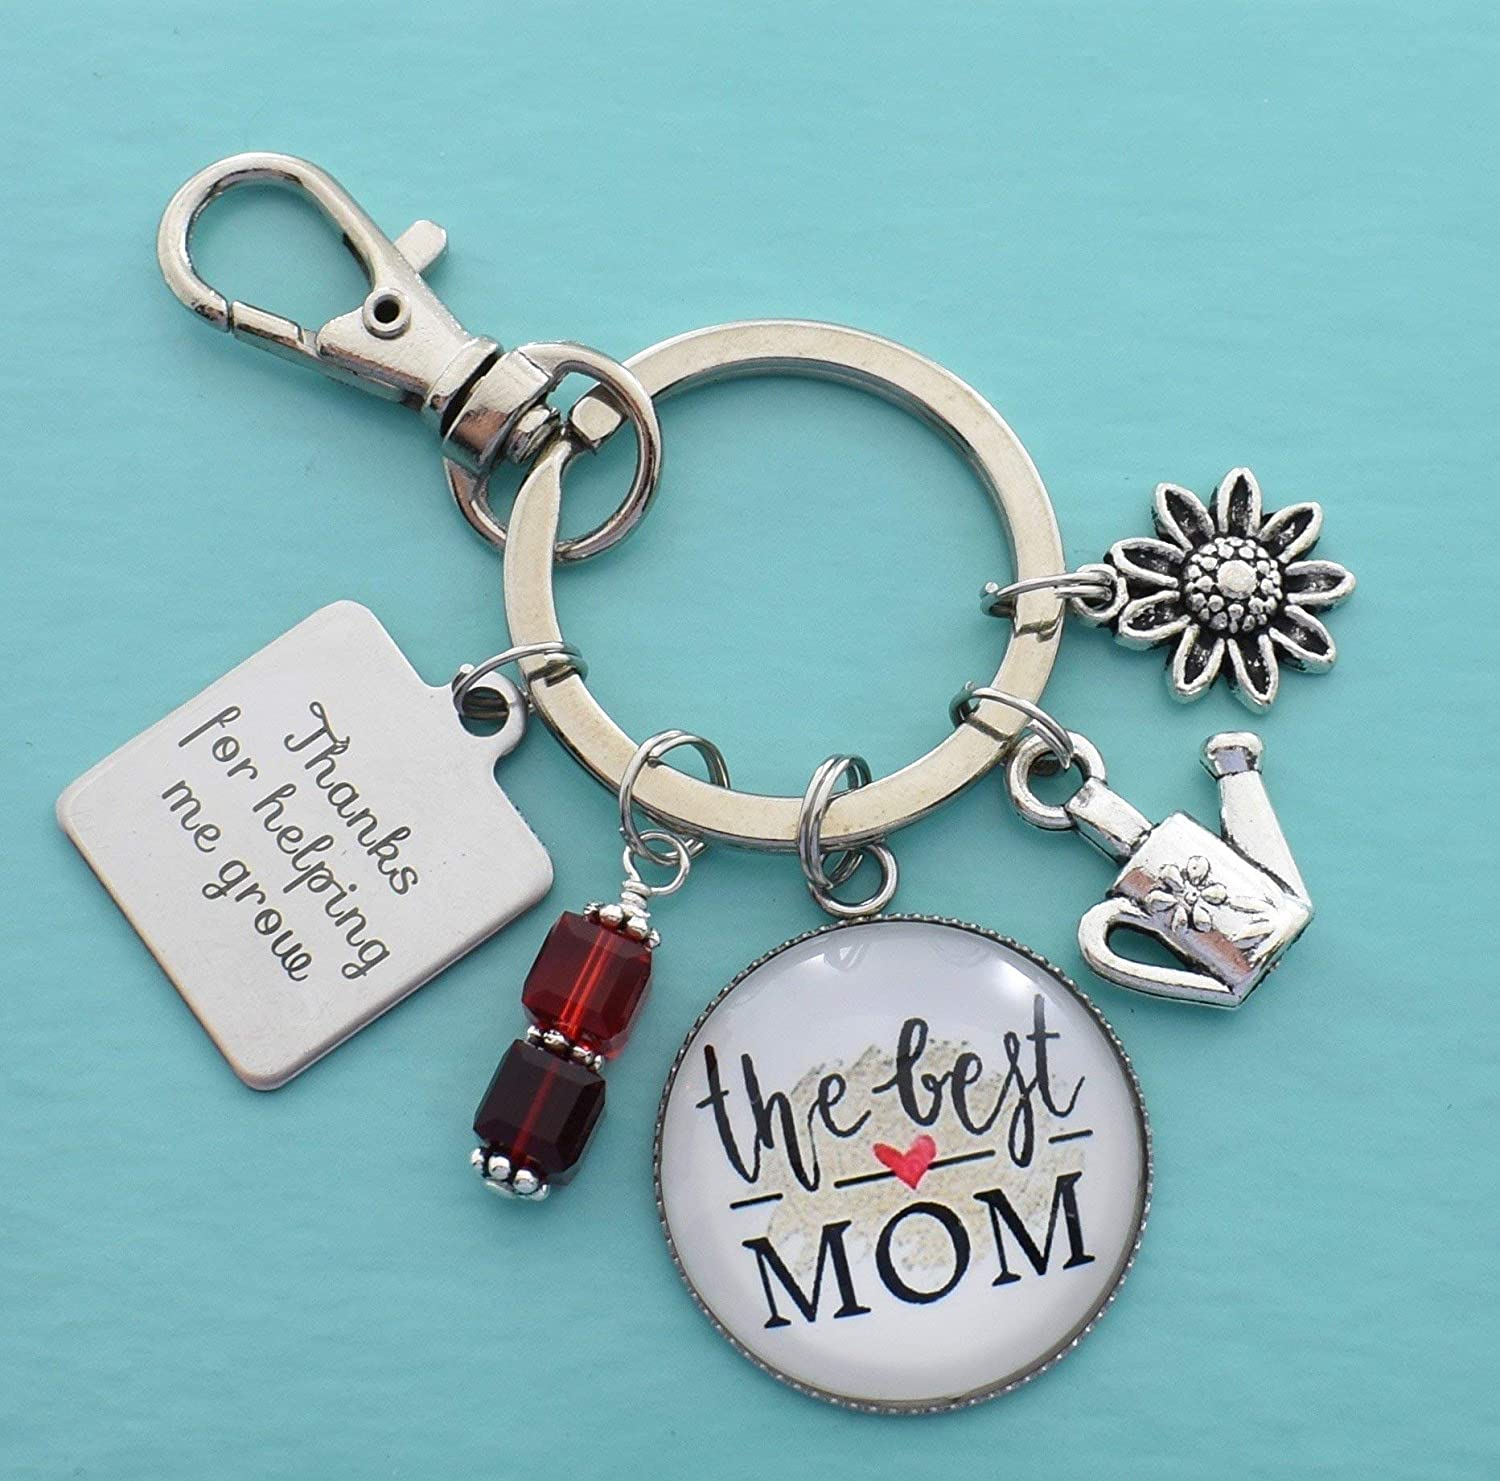 Stainless Steel Pendants Mothers Day Gifts Keychains Keyring Women Men Key Chain